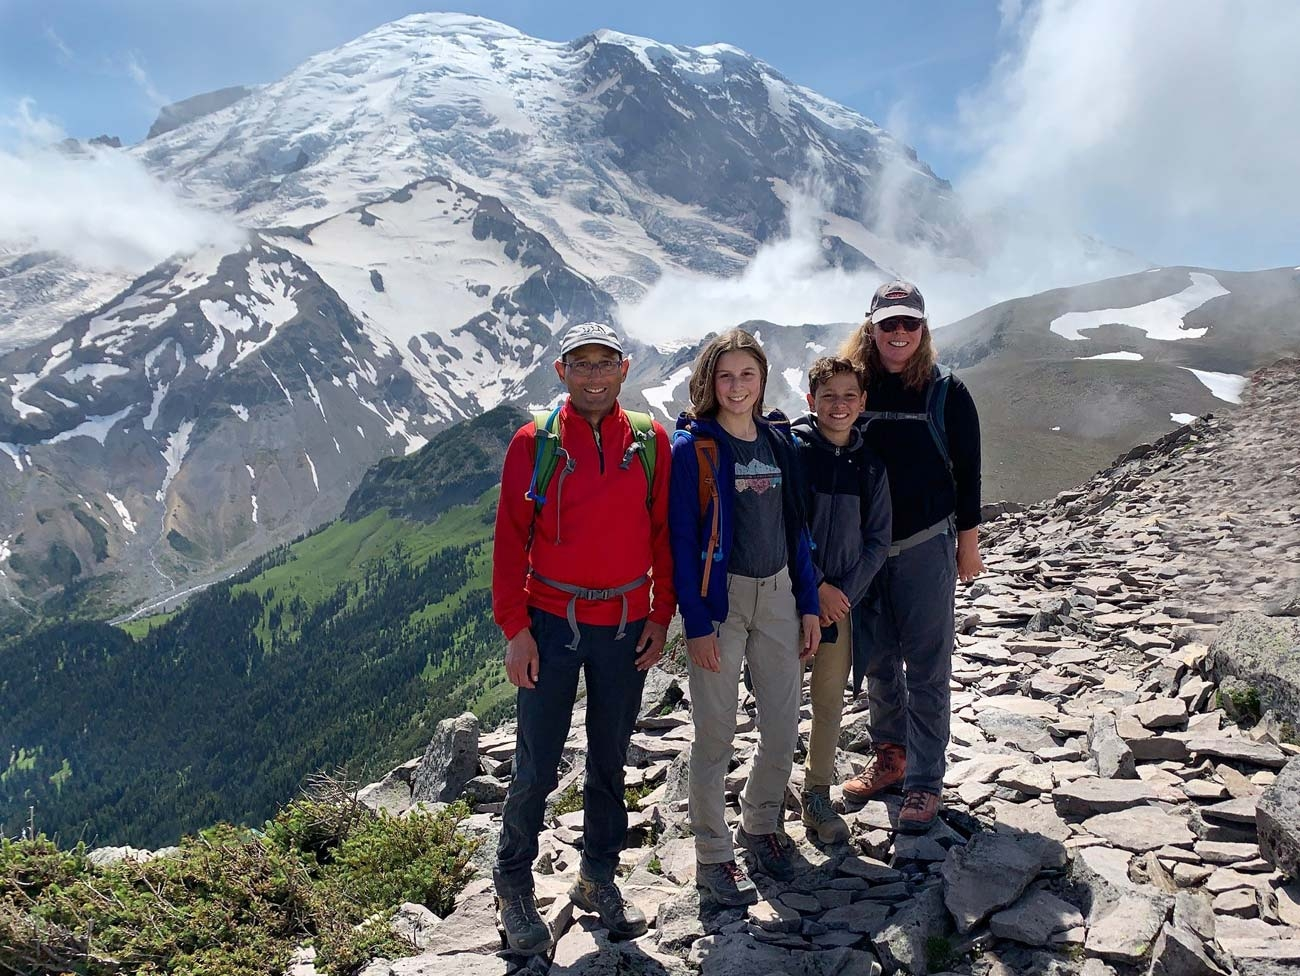 Dr. Karen Wernli, her husband, and their daughter and son on Burroughs Mountain trail, with Mount Rainier in the background